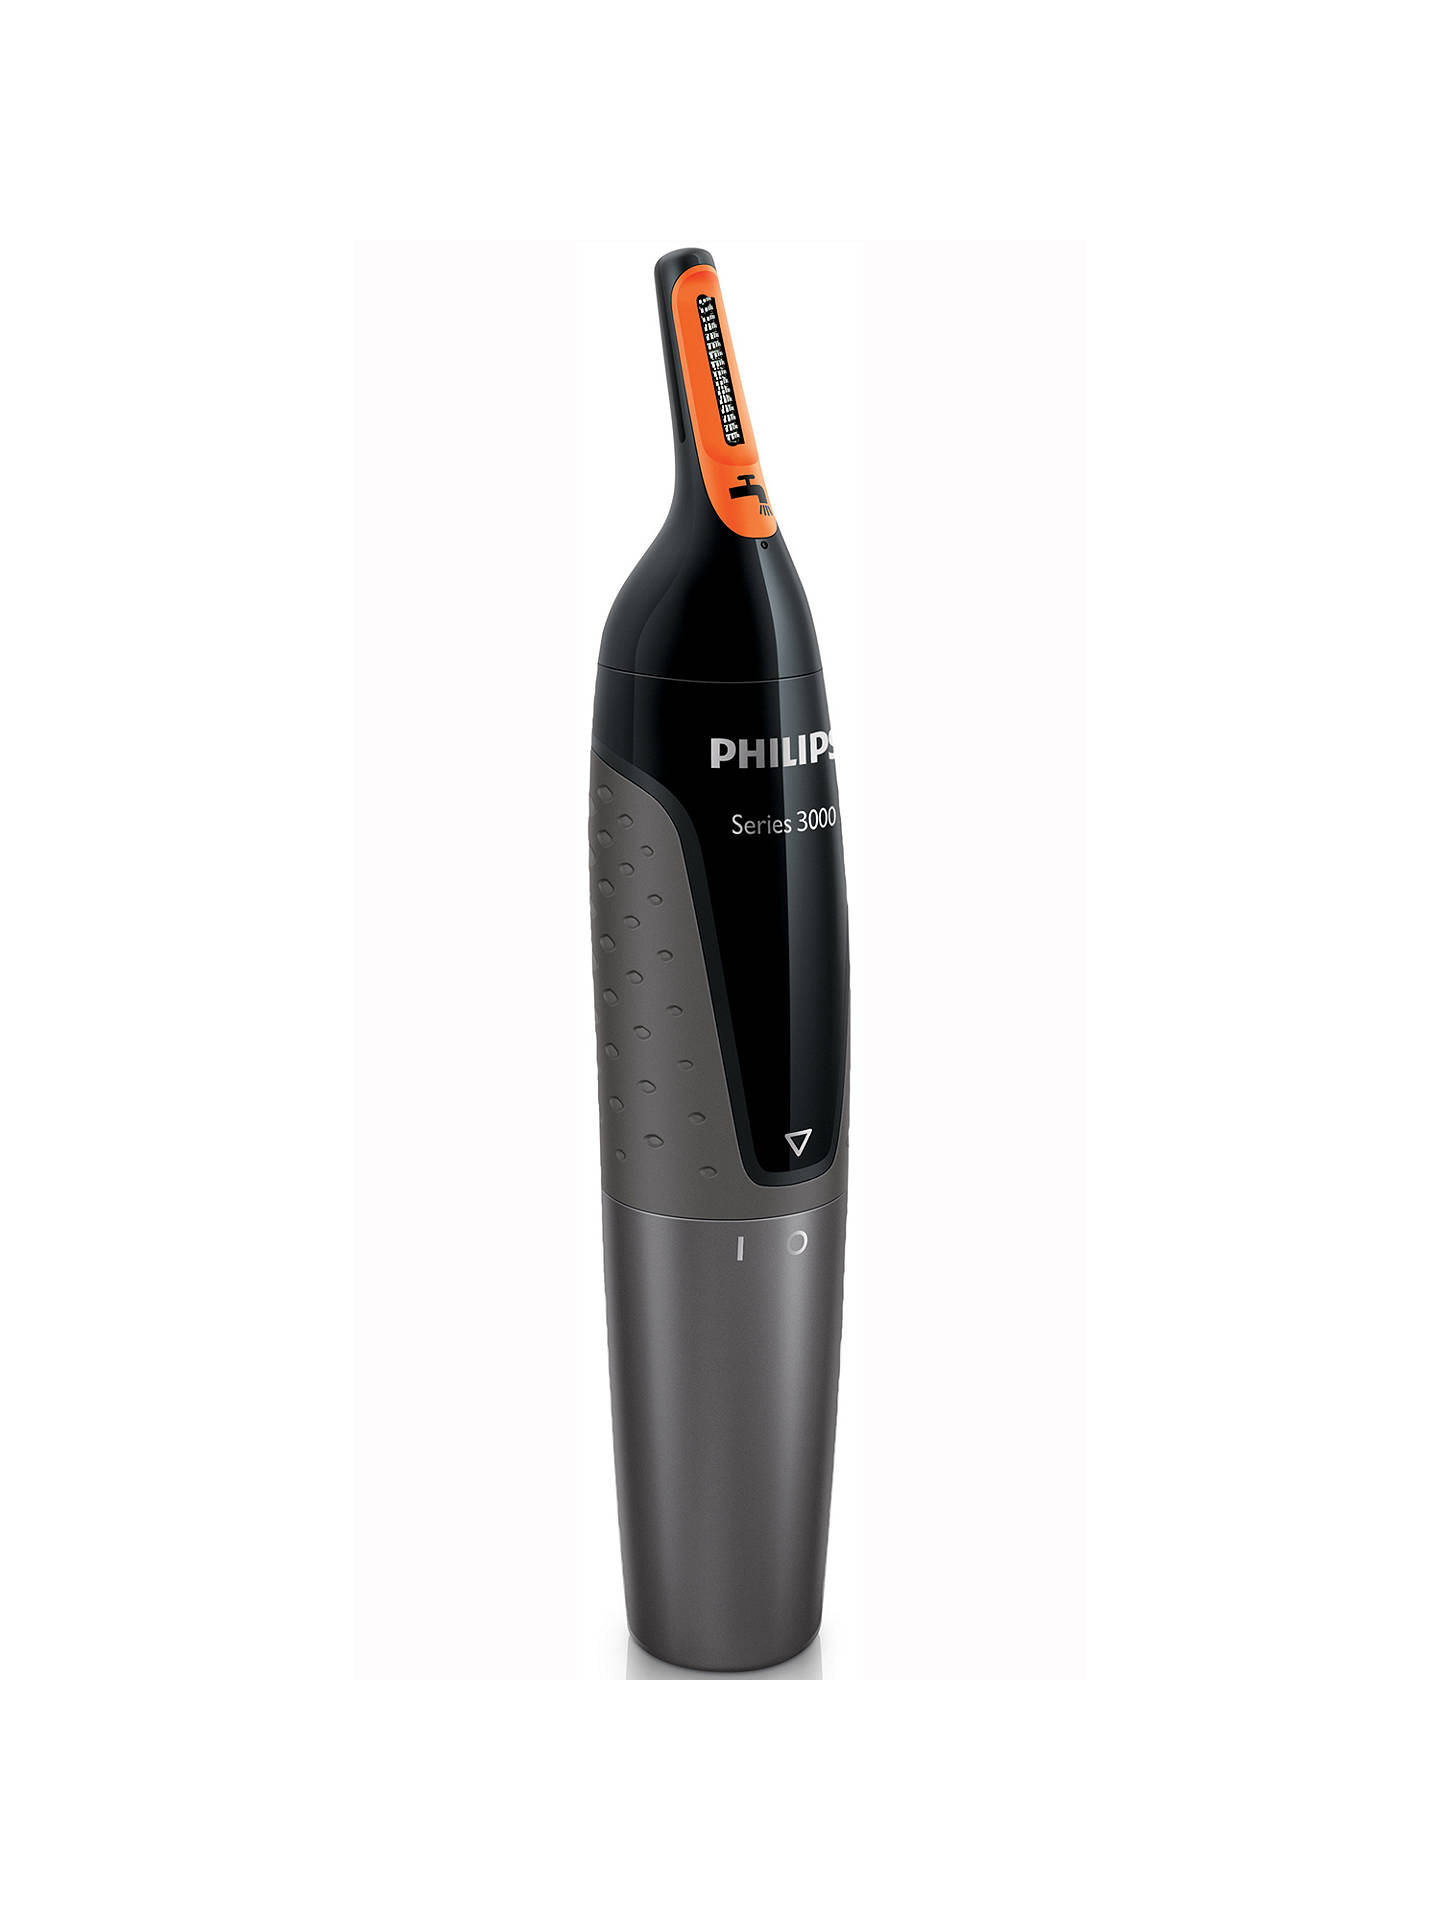 BuyPhilips NT3160/10 Nose Trimmer series 3000 Online at johnlewis.com